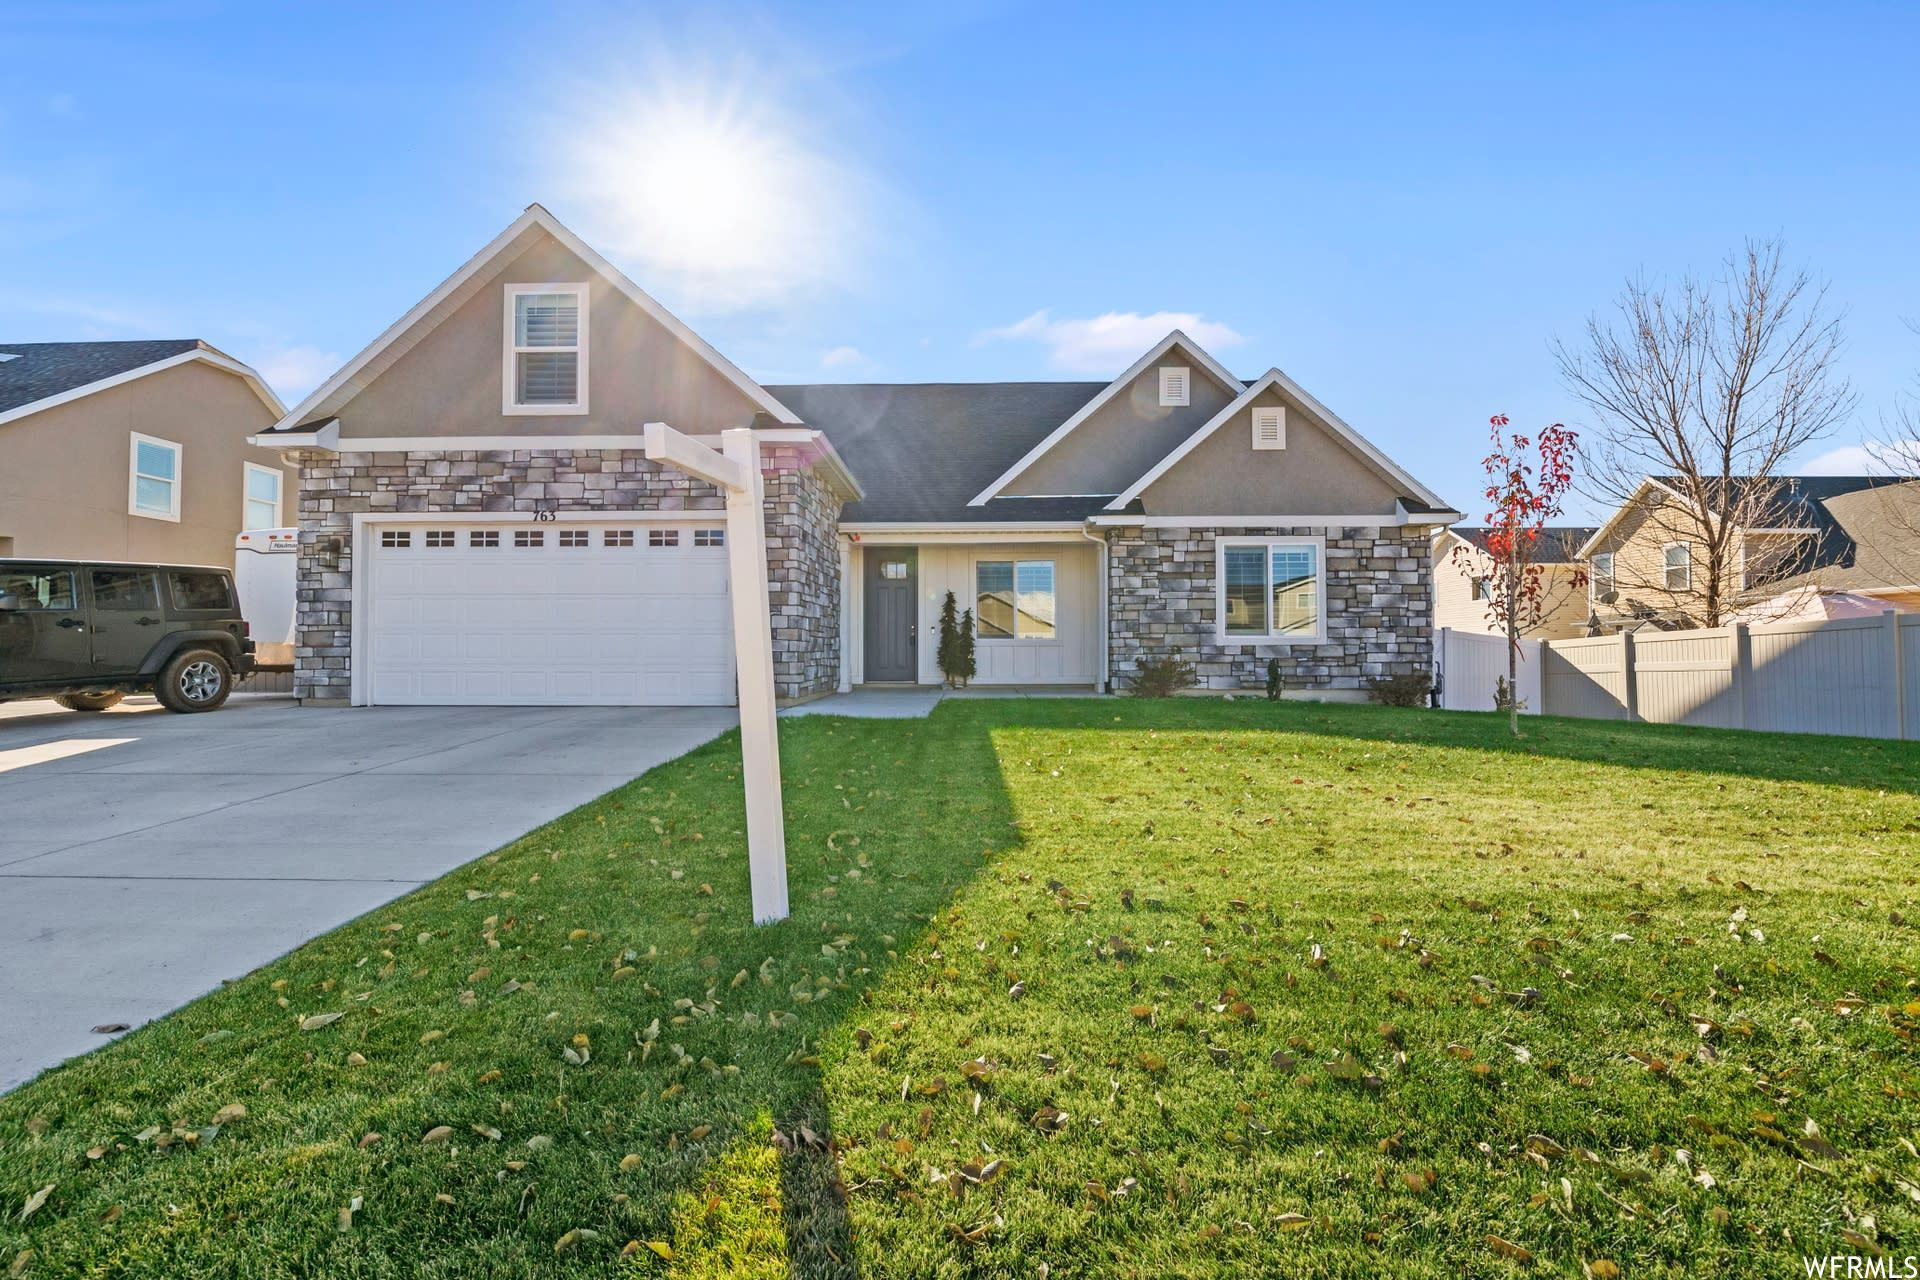 Photo of 763 W 600 S, Springville, UT 84663 (MLS # 1713116)